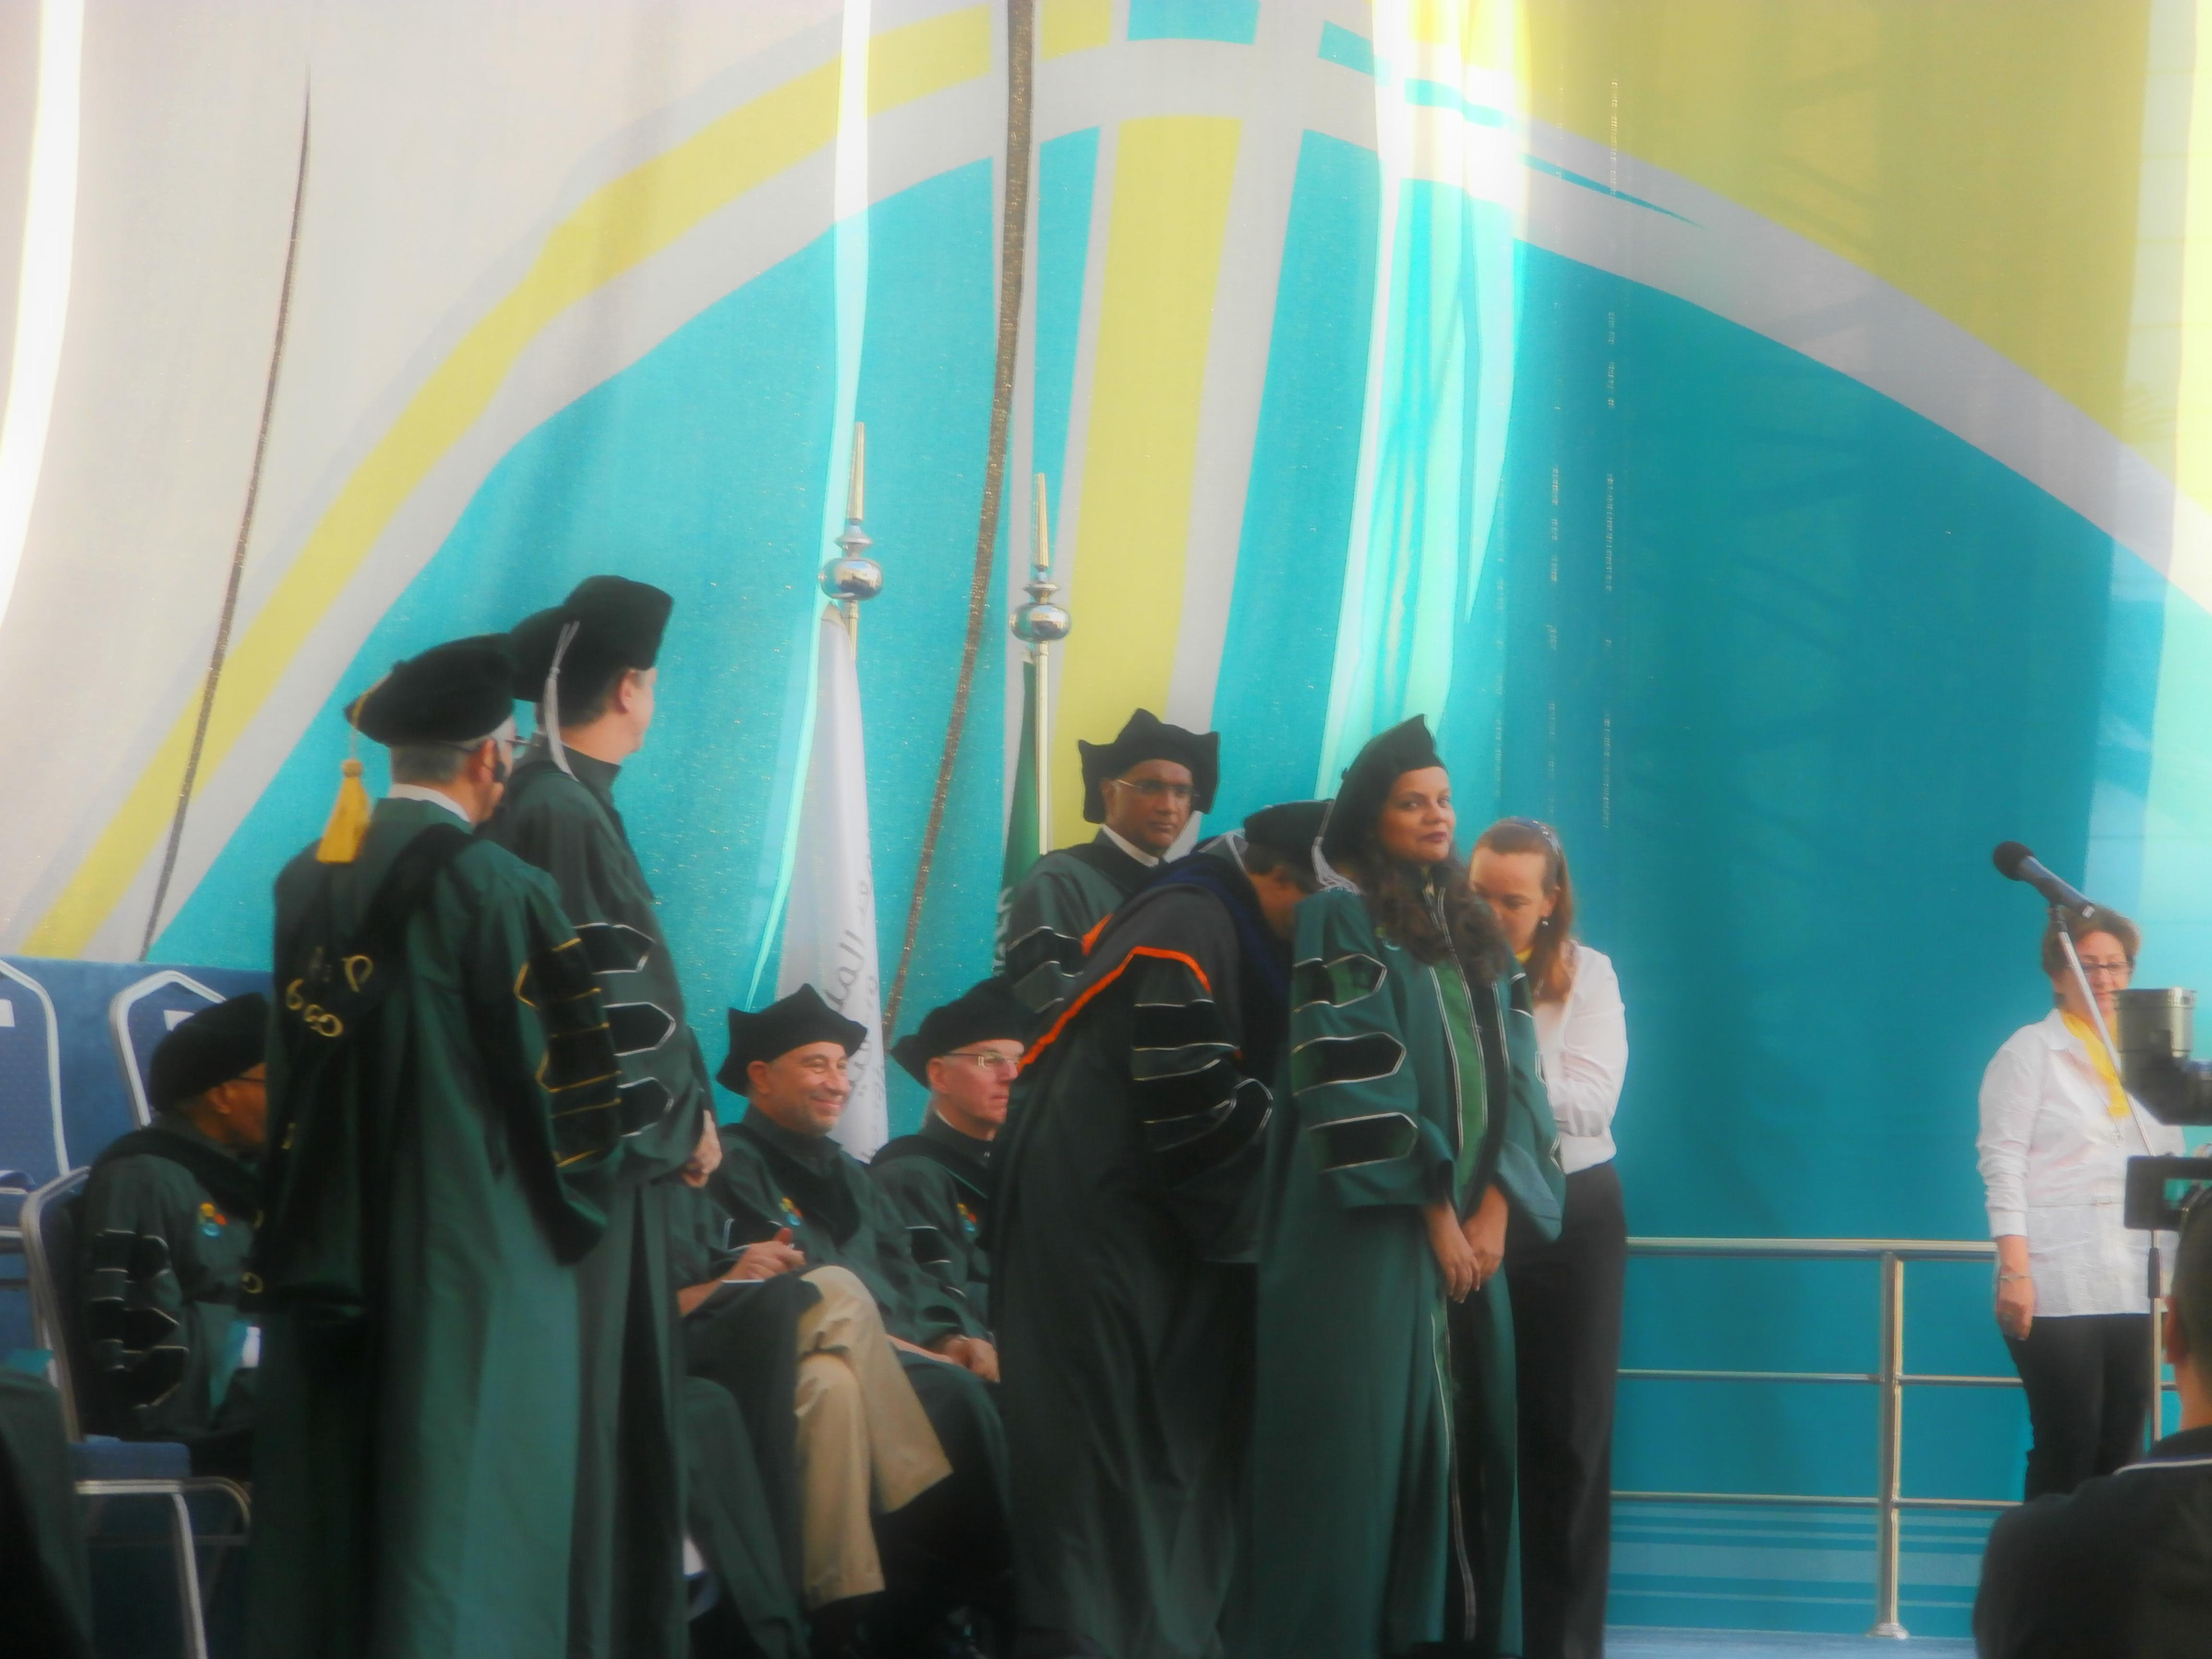 Hina Tabassum Being Awarded The Doctoral Hood By Professor Mohamed-Slim Alouini On Her Graduation